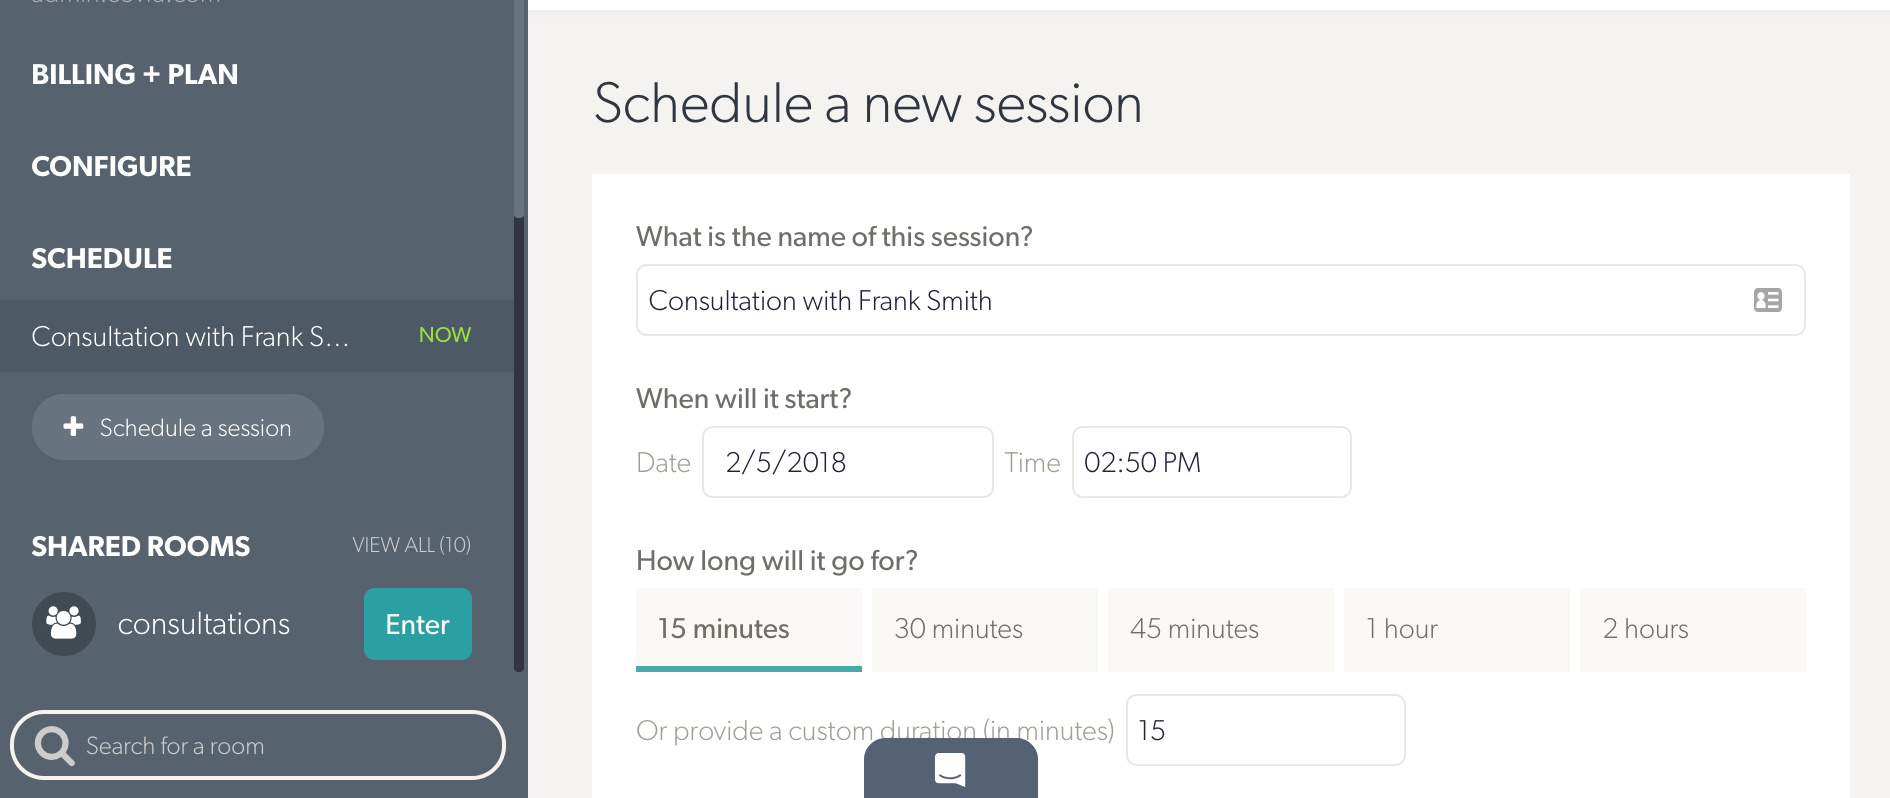 Schedule new session